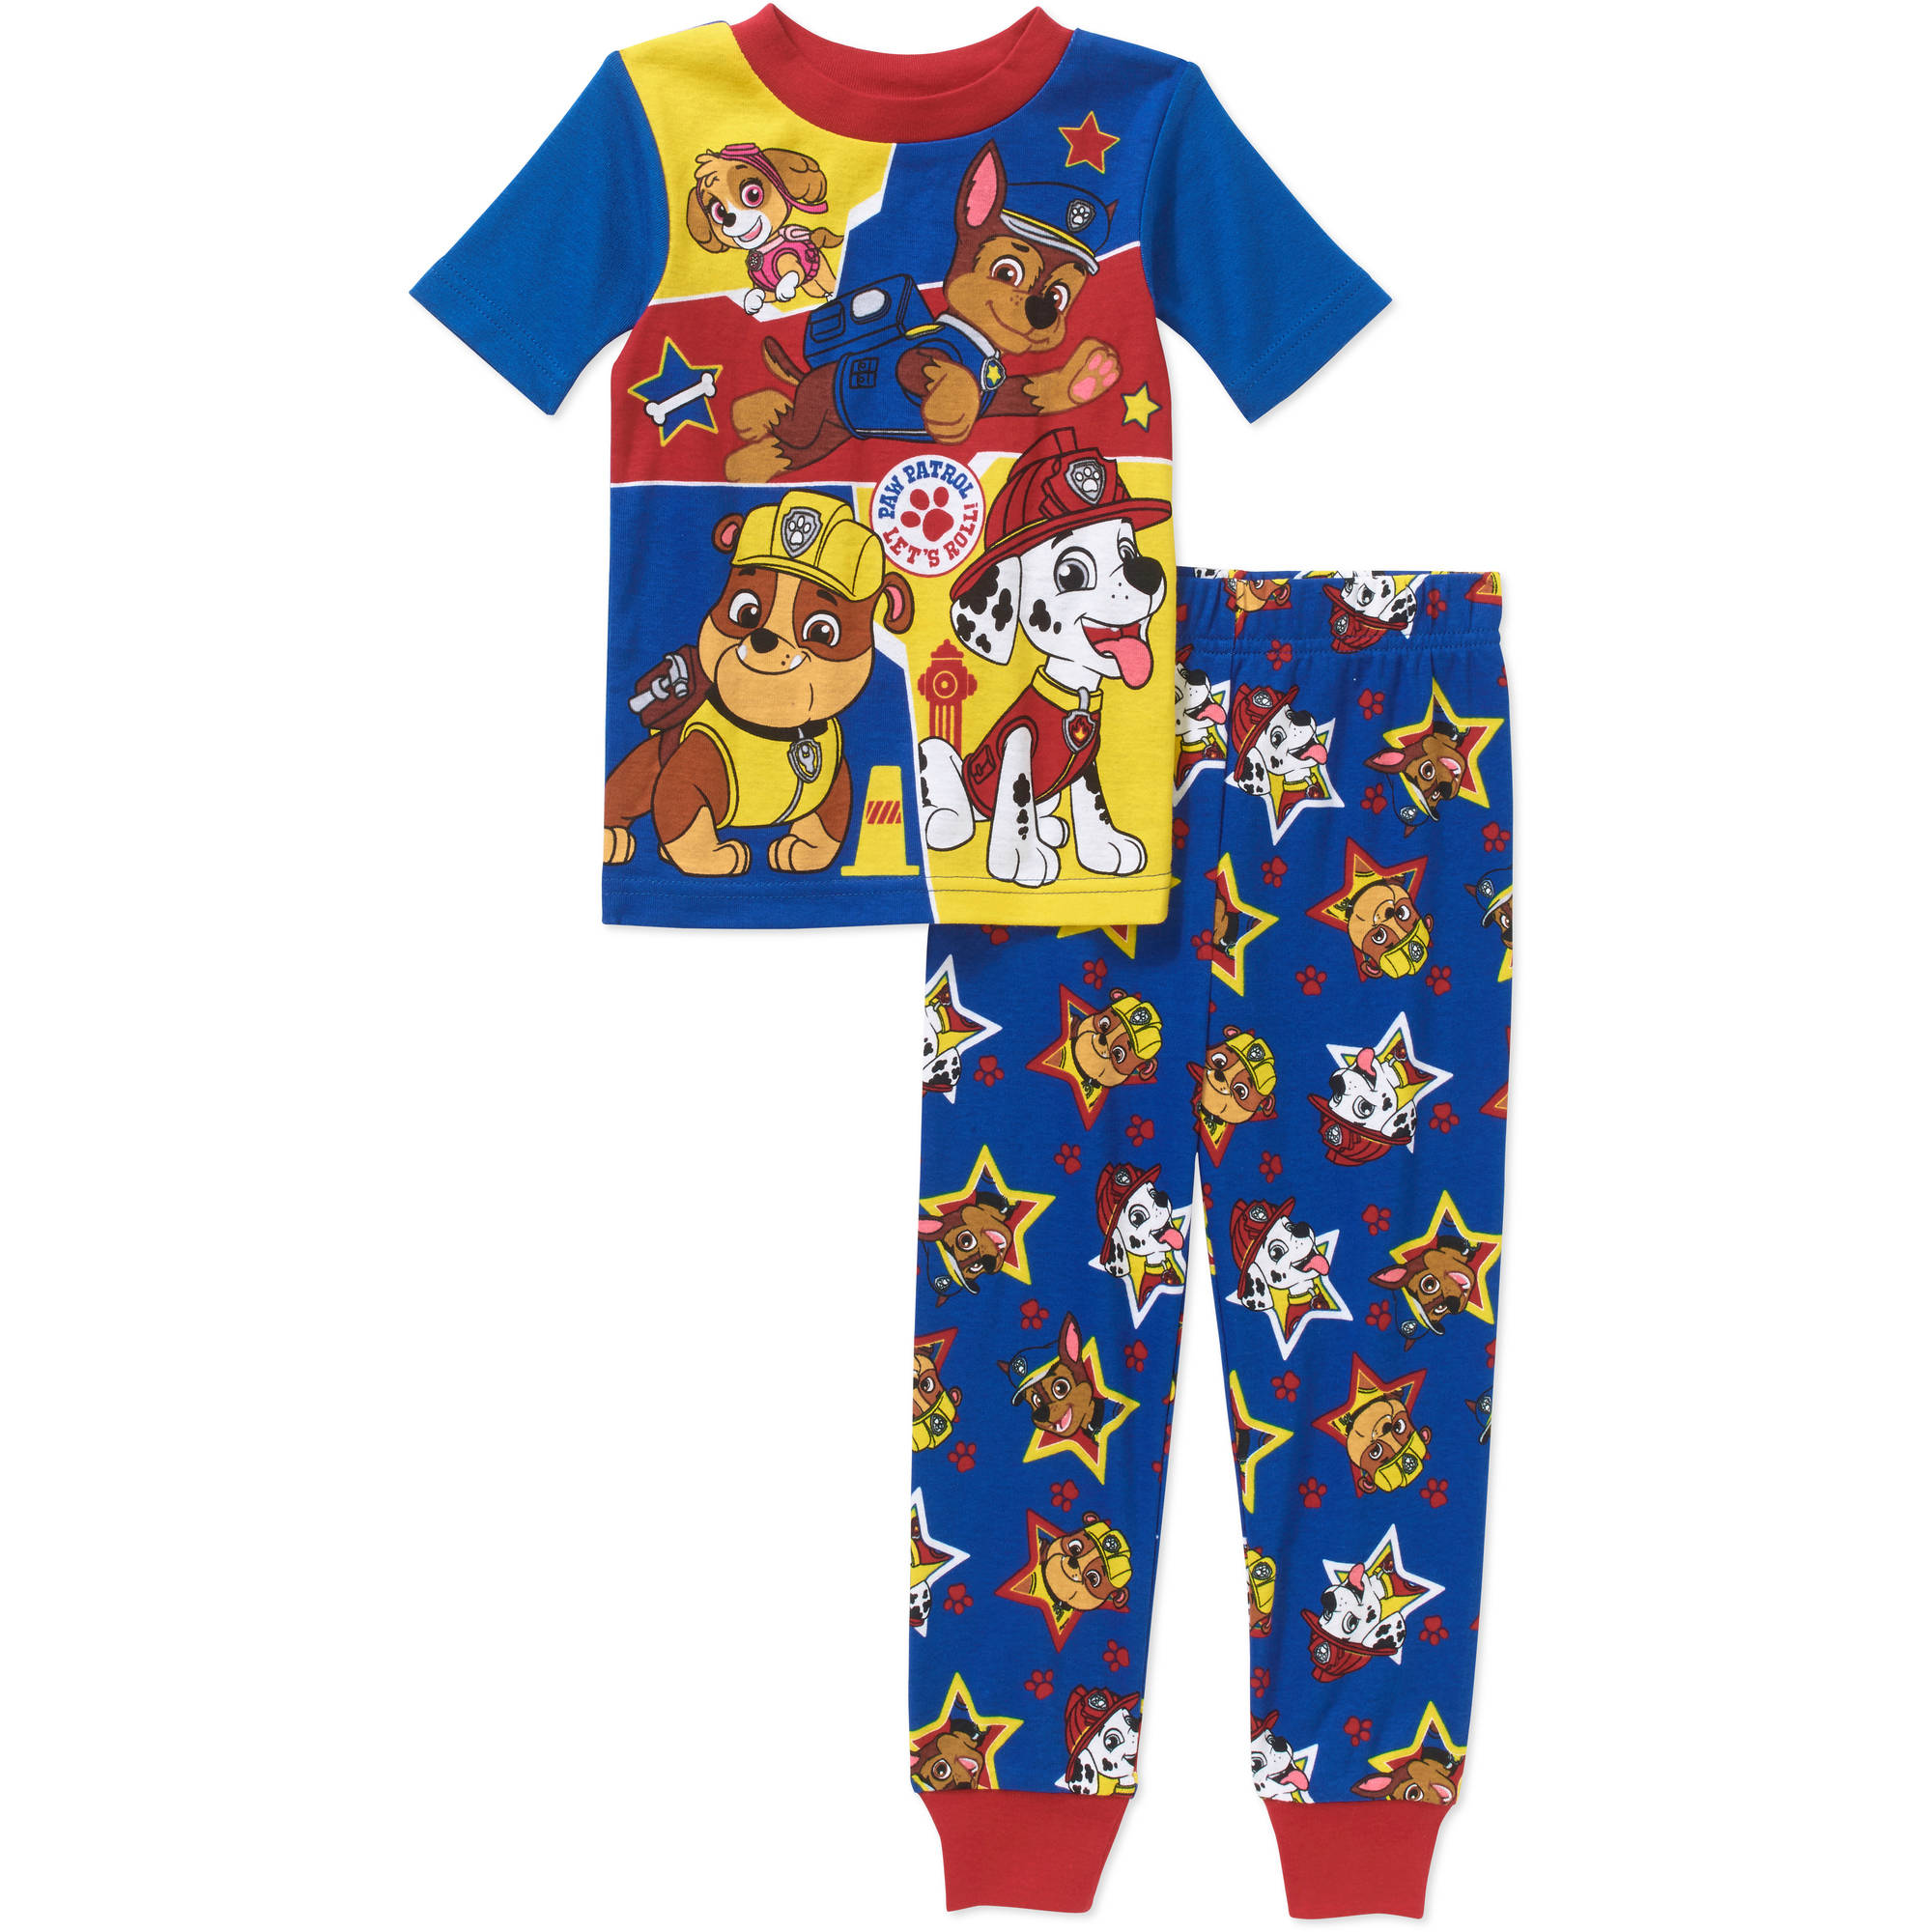 Paw Patrol Toddler Boy Licensed Cotton Pajama Sleepwear Set